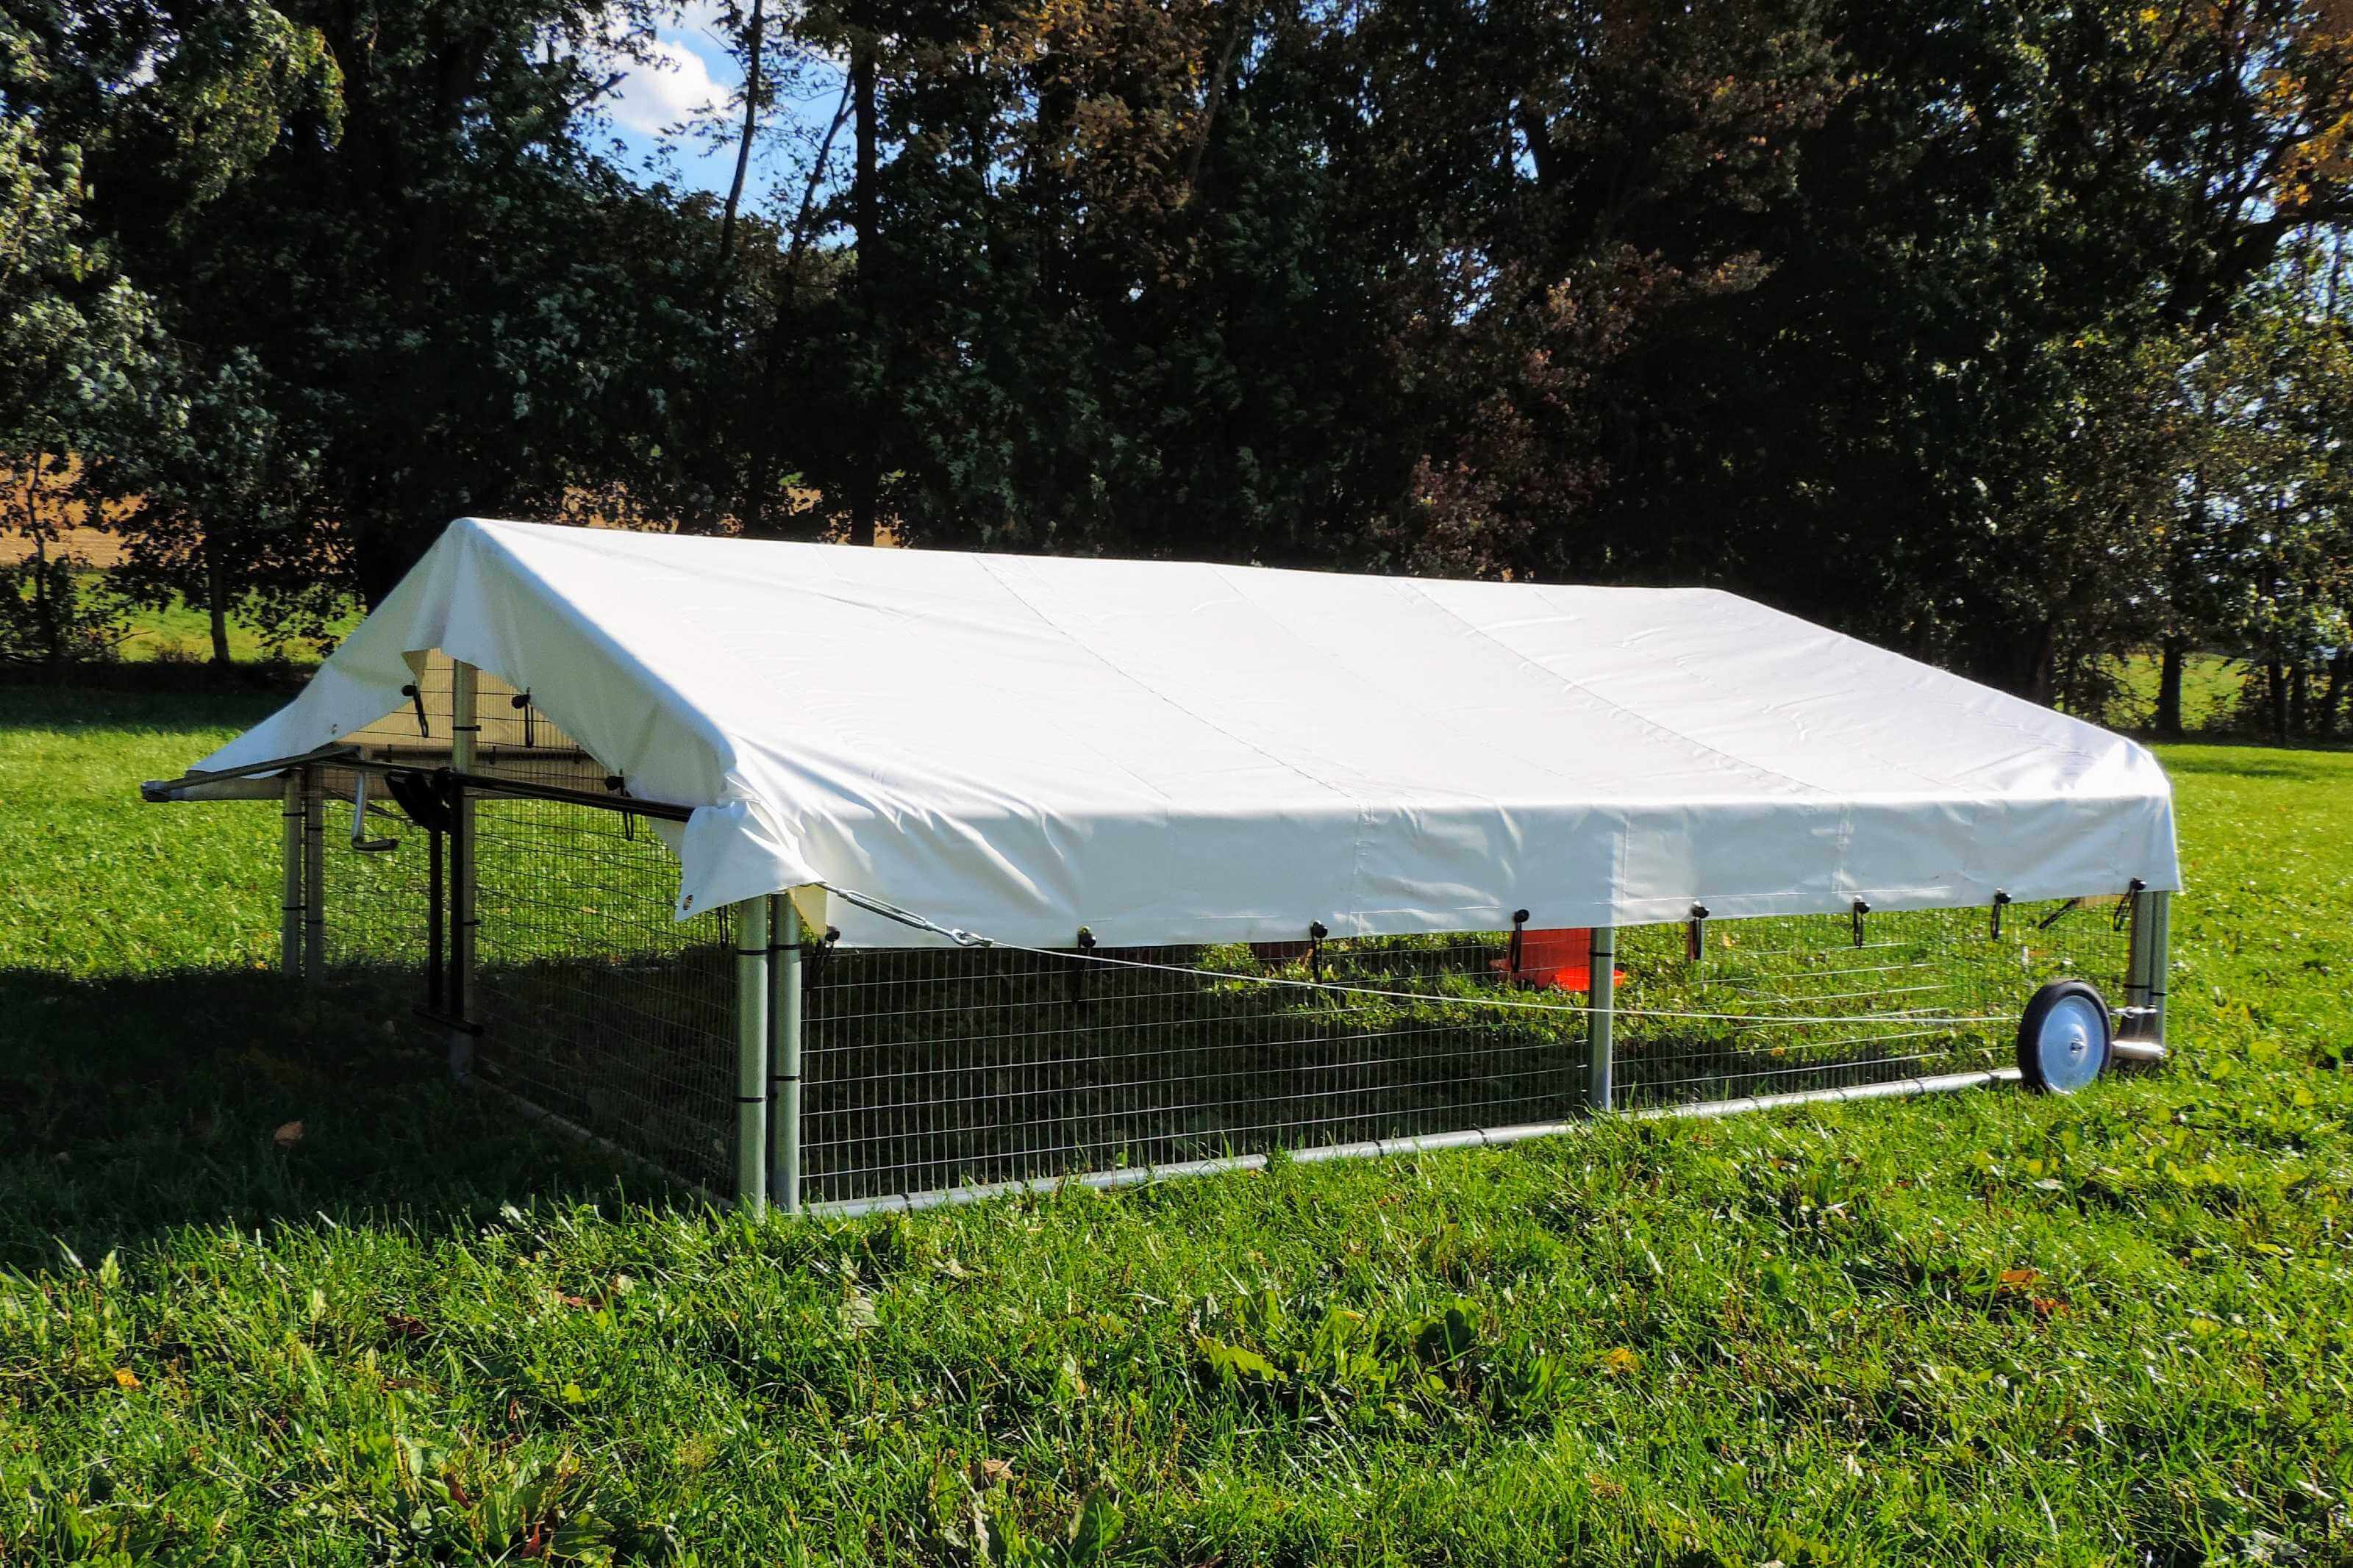 Commercial mobile chicken coop for raising pastured poultry.